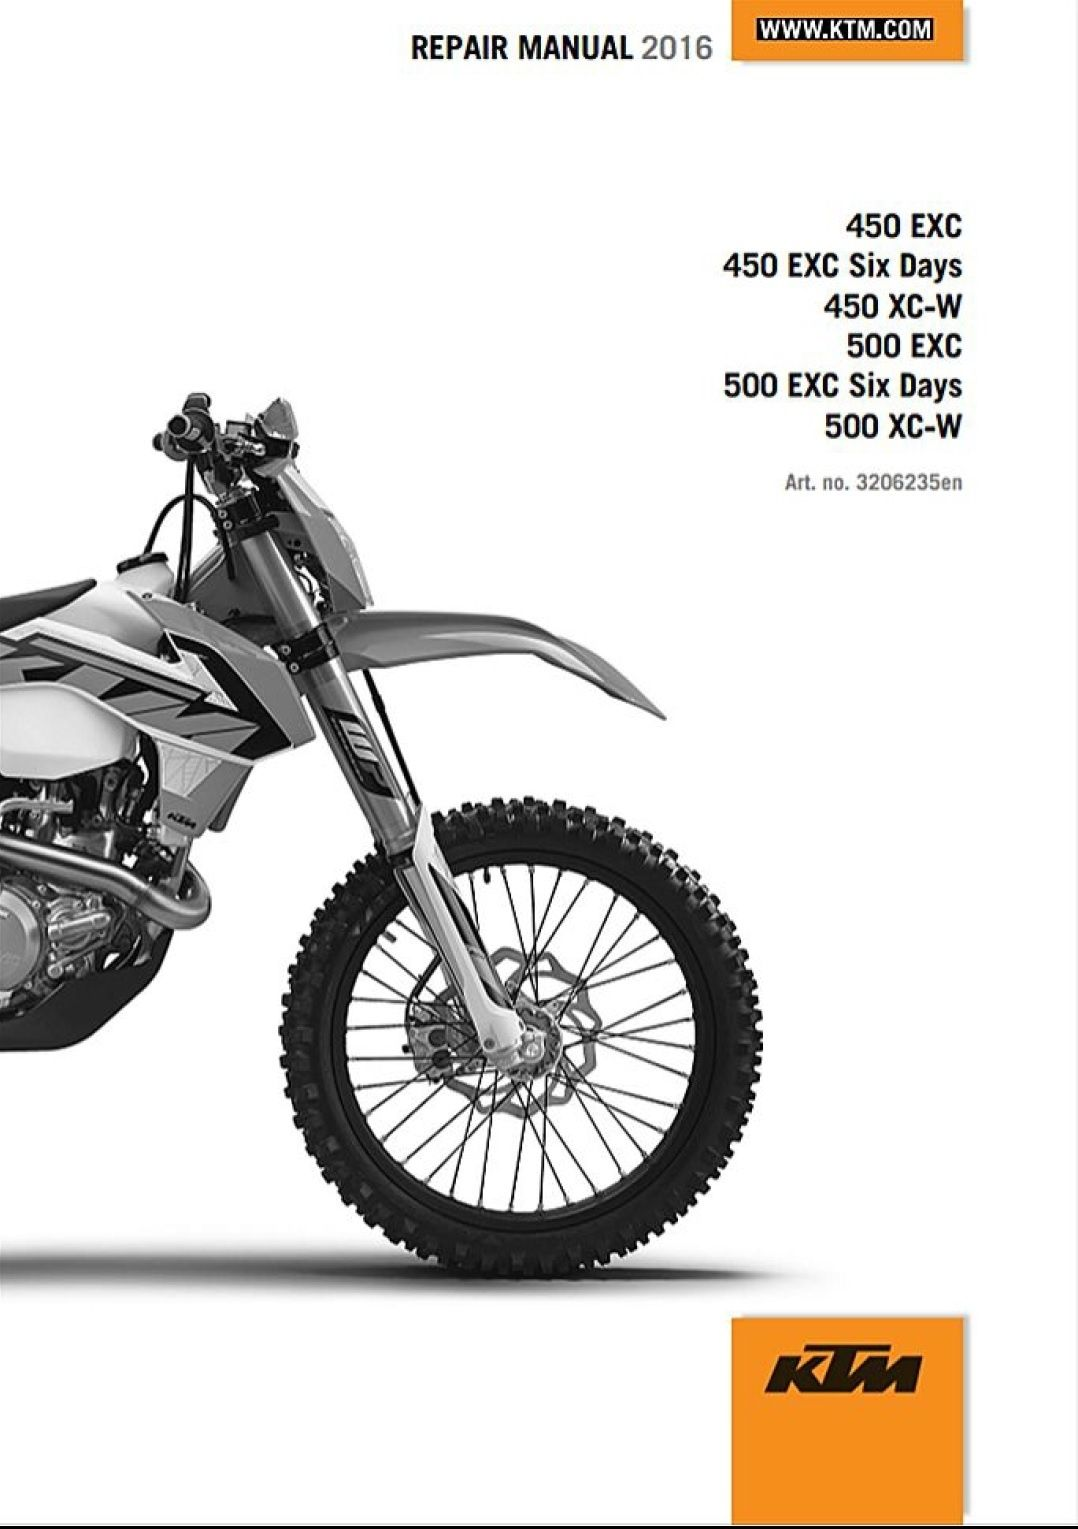 2016 KTM 450 500 EXC XC-W 6DAYS SERVICE REPAIR MANUAL. ===